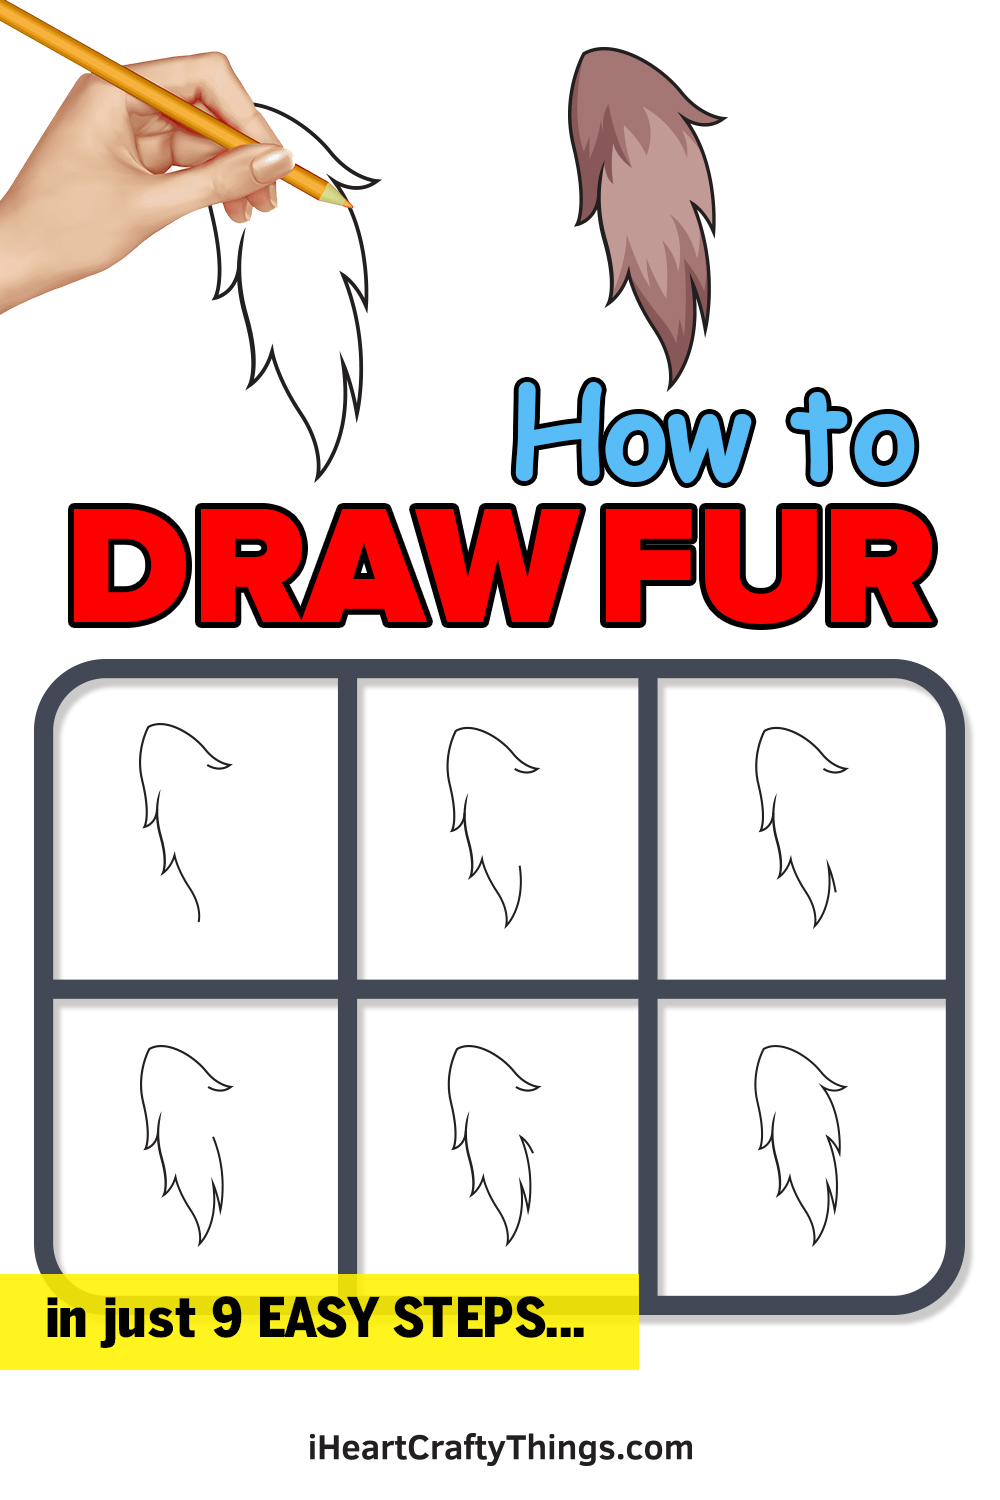 how to draw fur in 9 easy steps